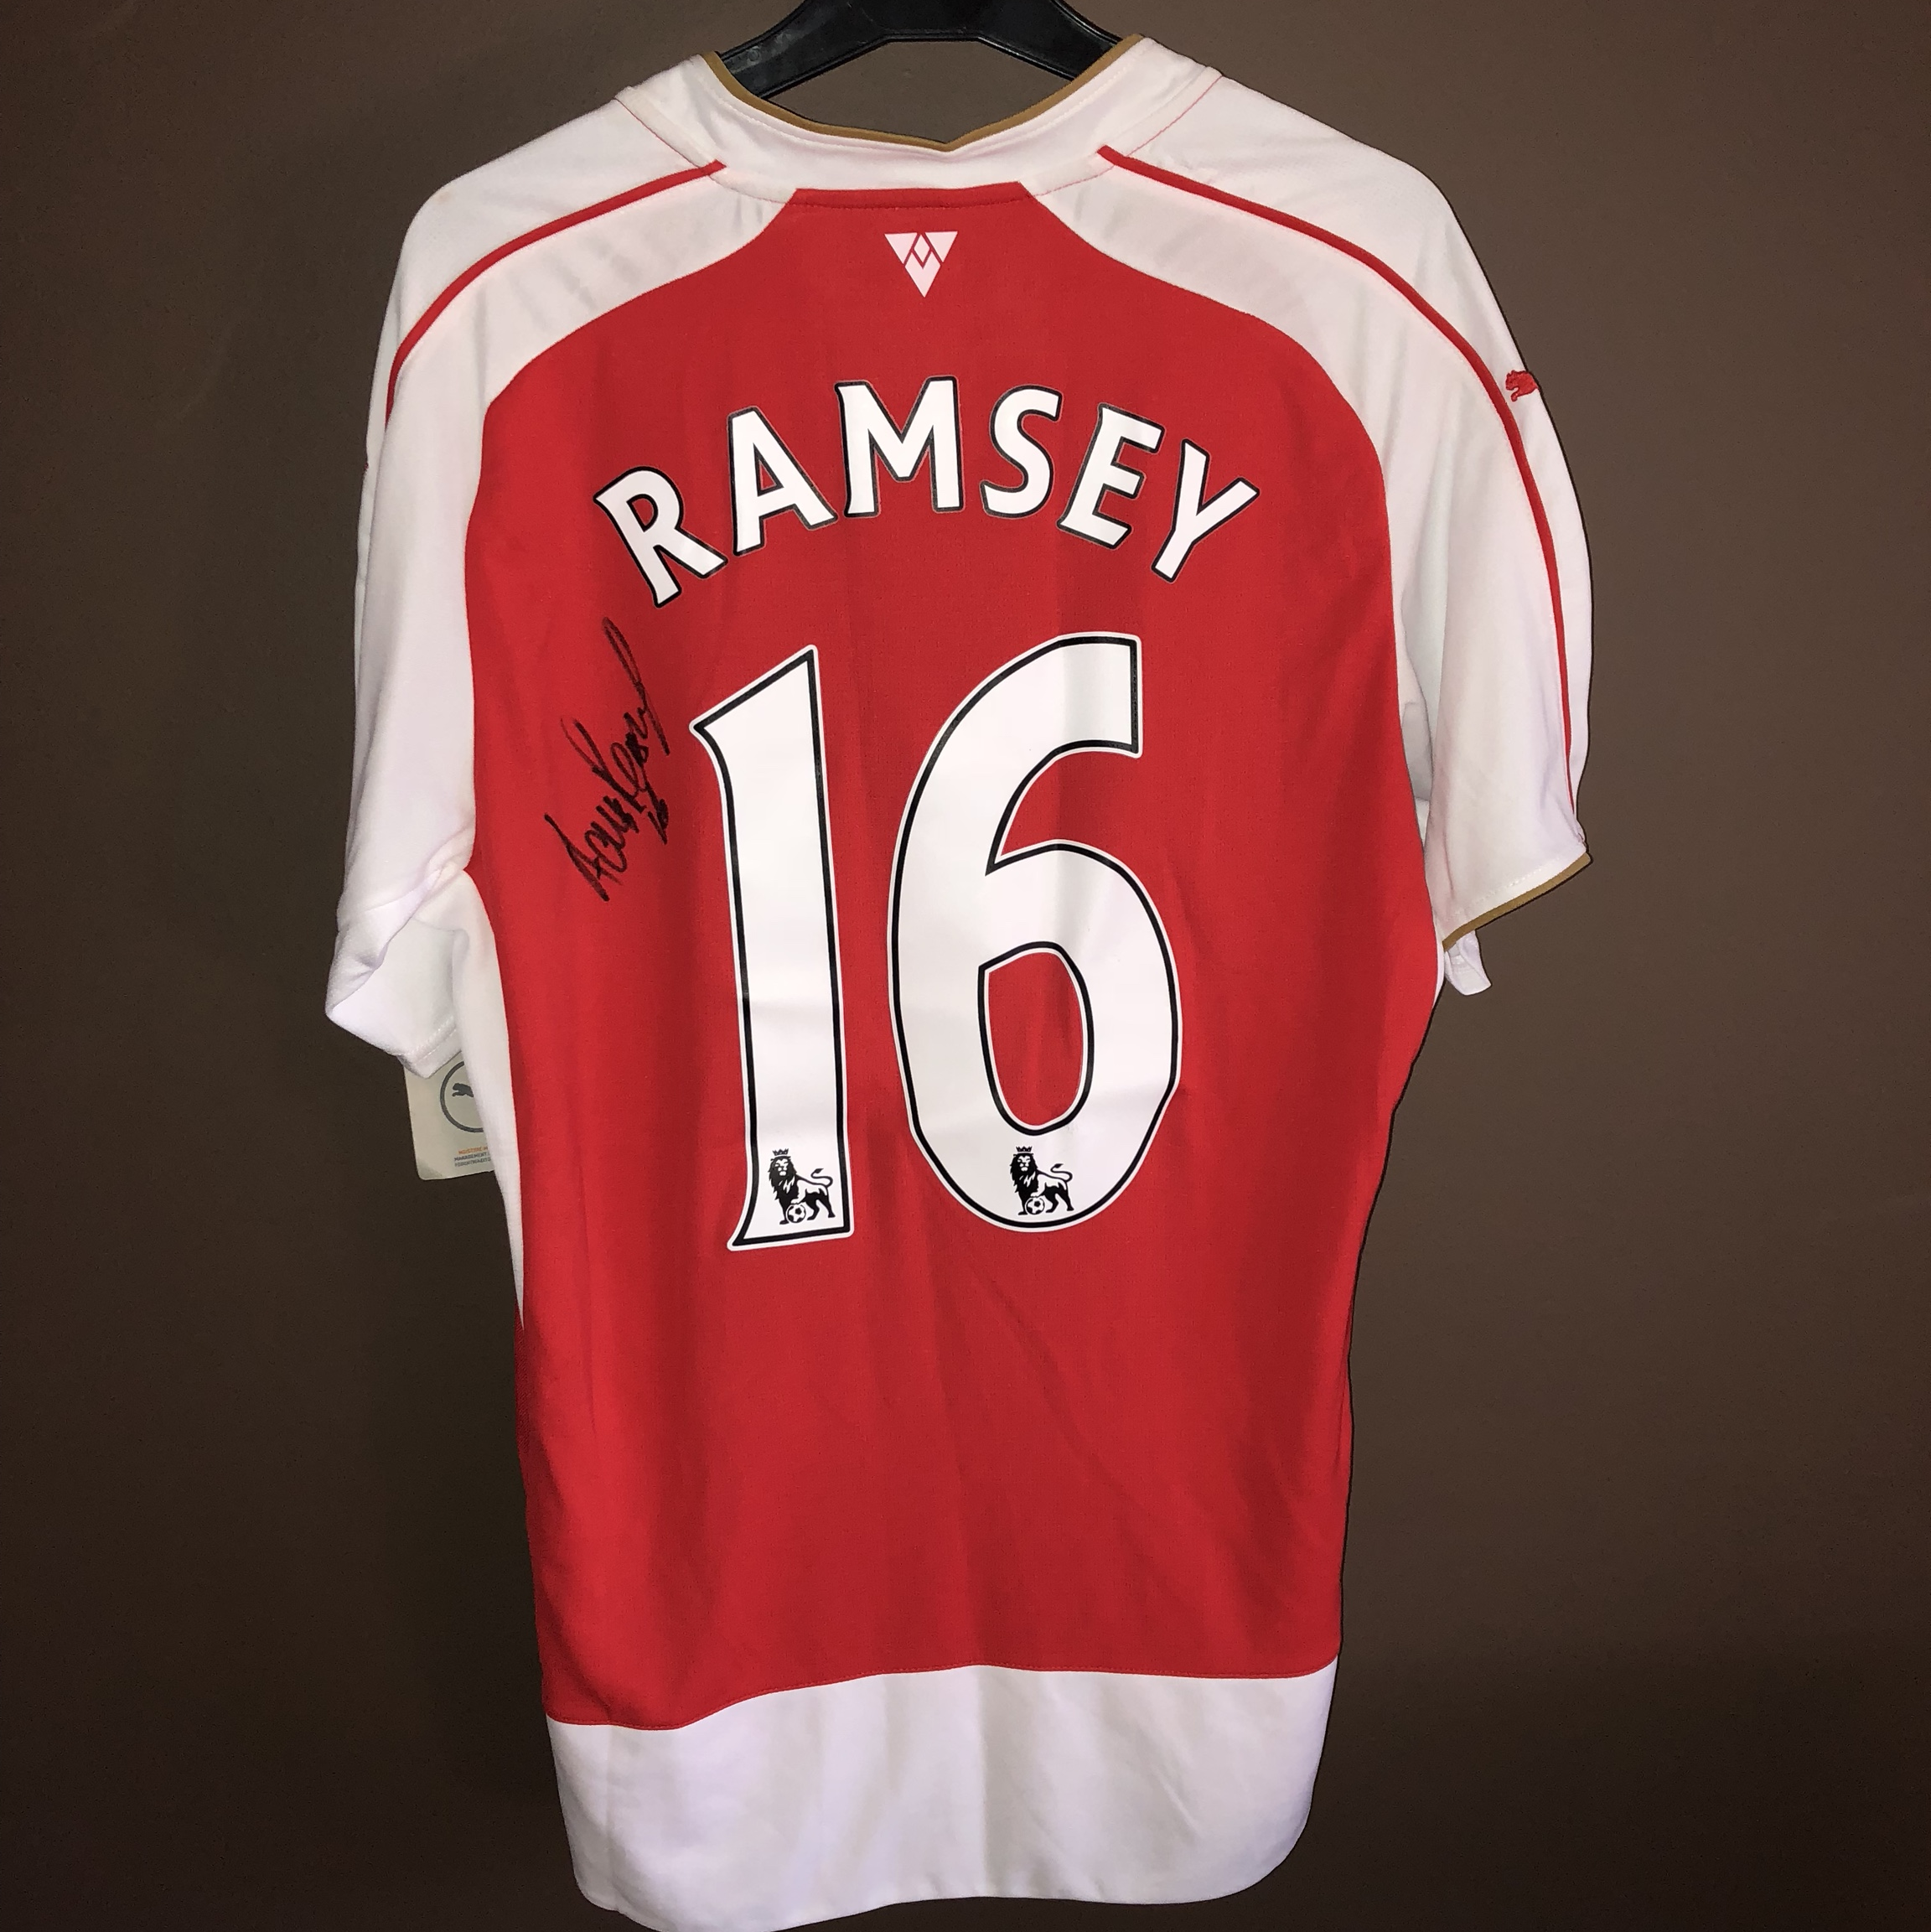 check out 61796 ac247 Signed Aaron Ramsey Arsenal FC shirt Comes with COA - Depop